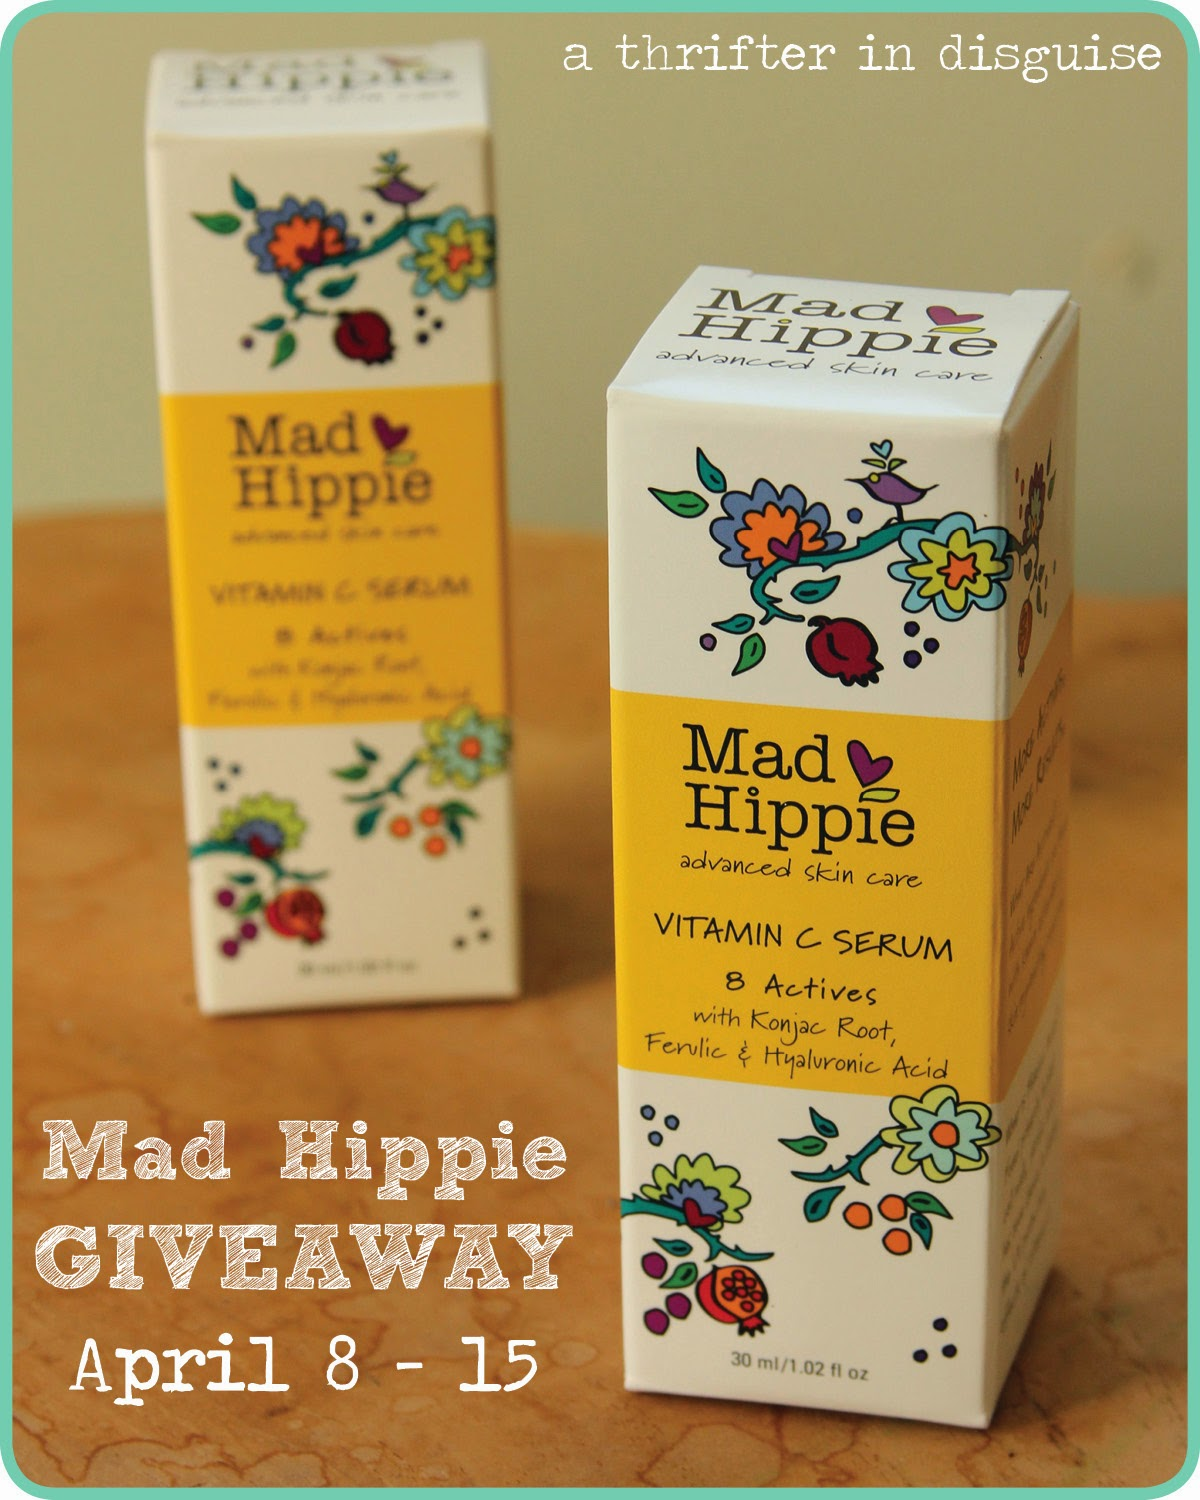 Mad Hippie Giveaway